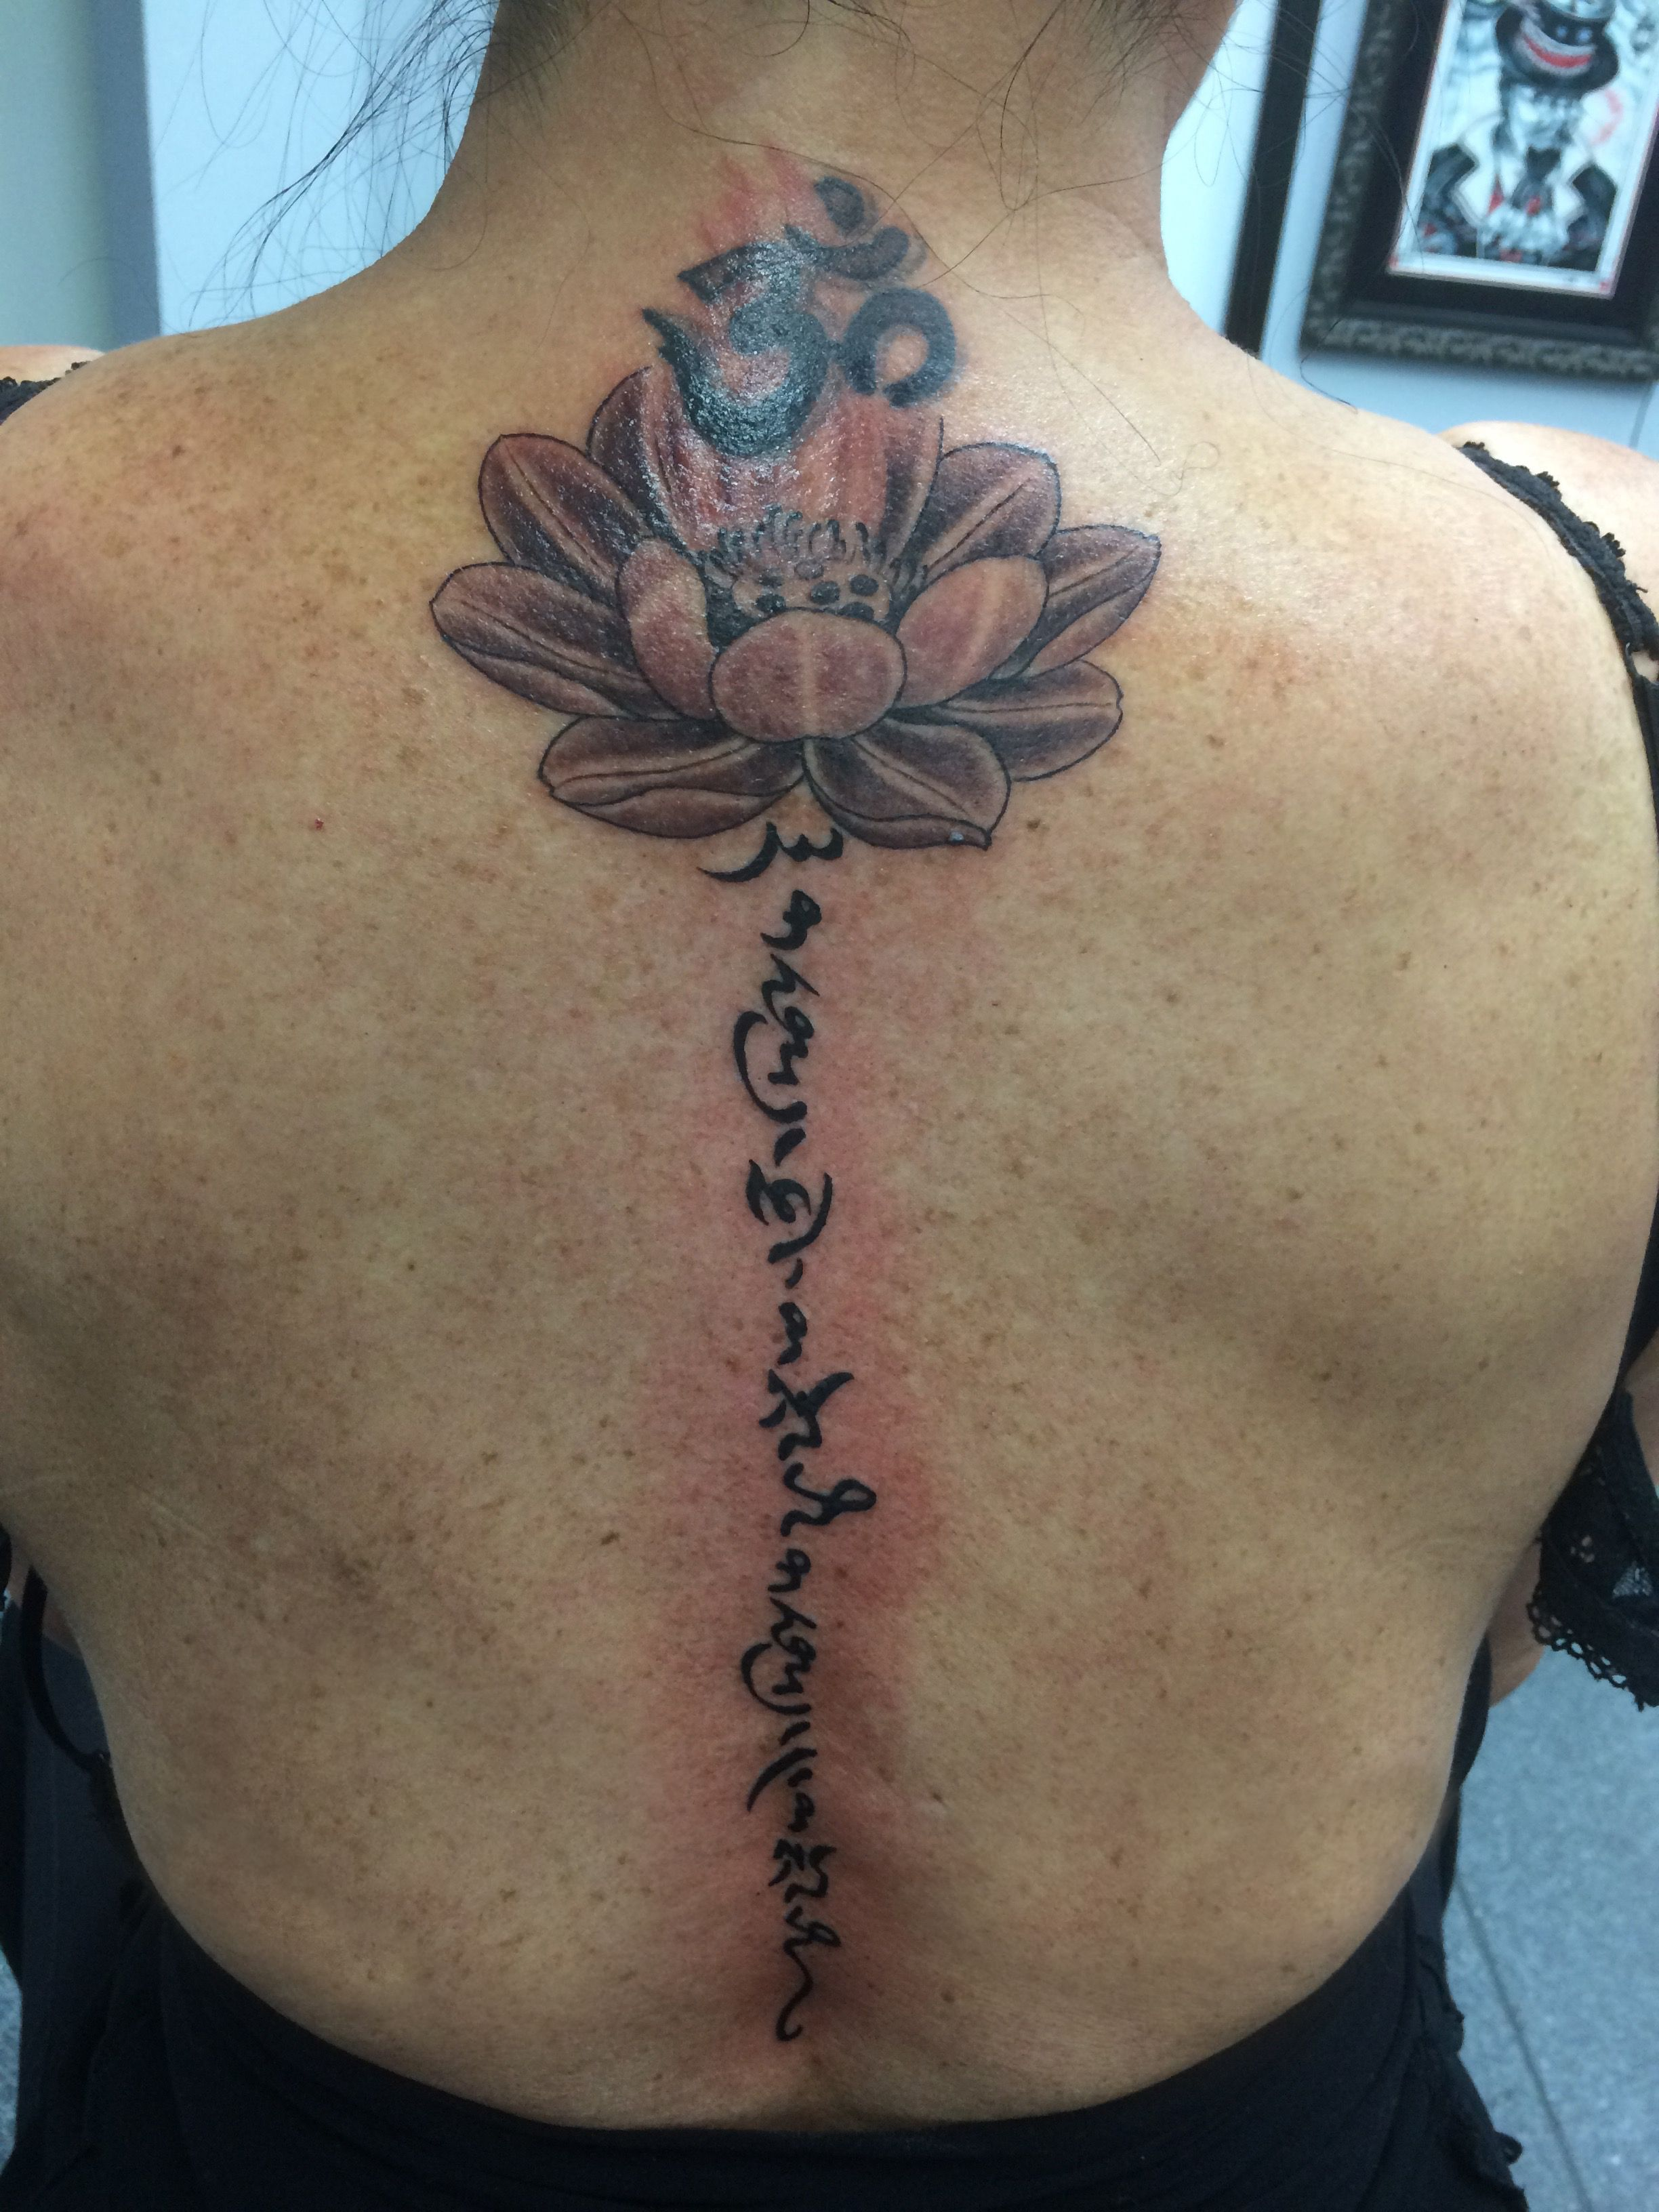 Thai Lotus And Original Tibetan Script Forever With You Forever With Me Thank You To Nixx From 383 Tat Tattoo Gold Coast Best Tattoo Designs Tattoo Designs